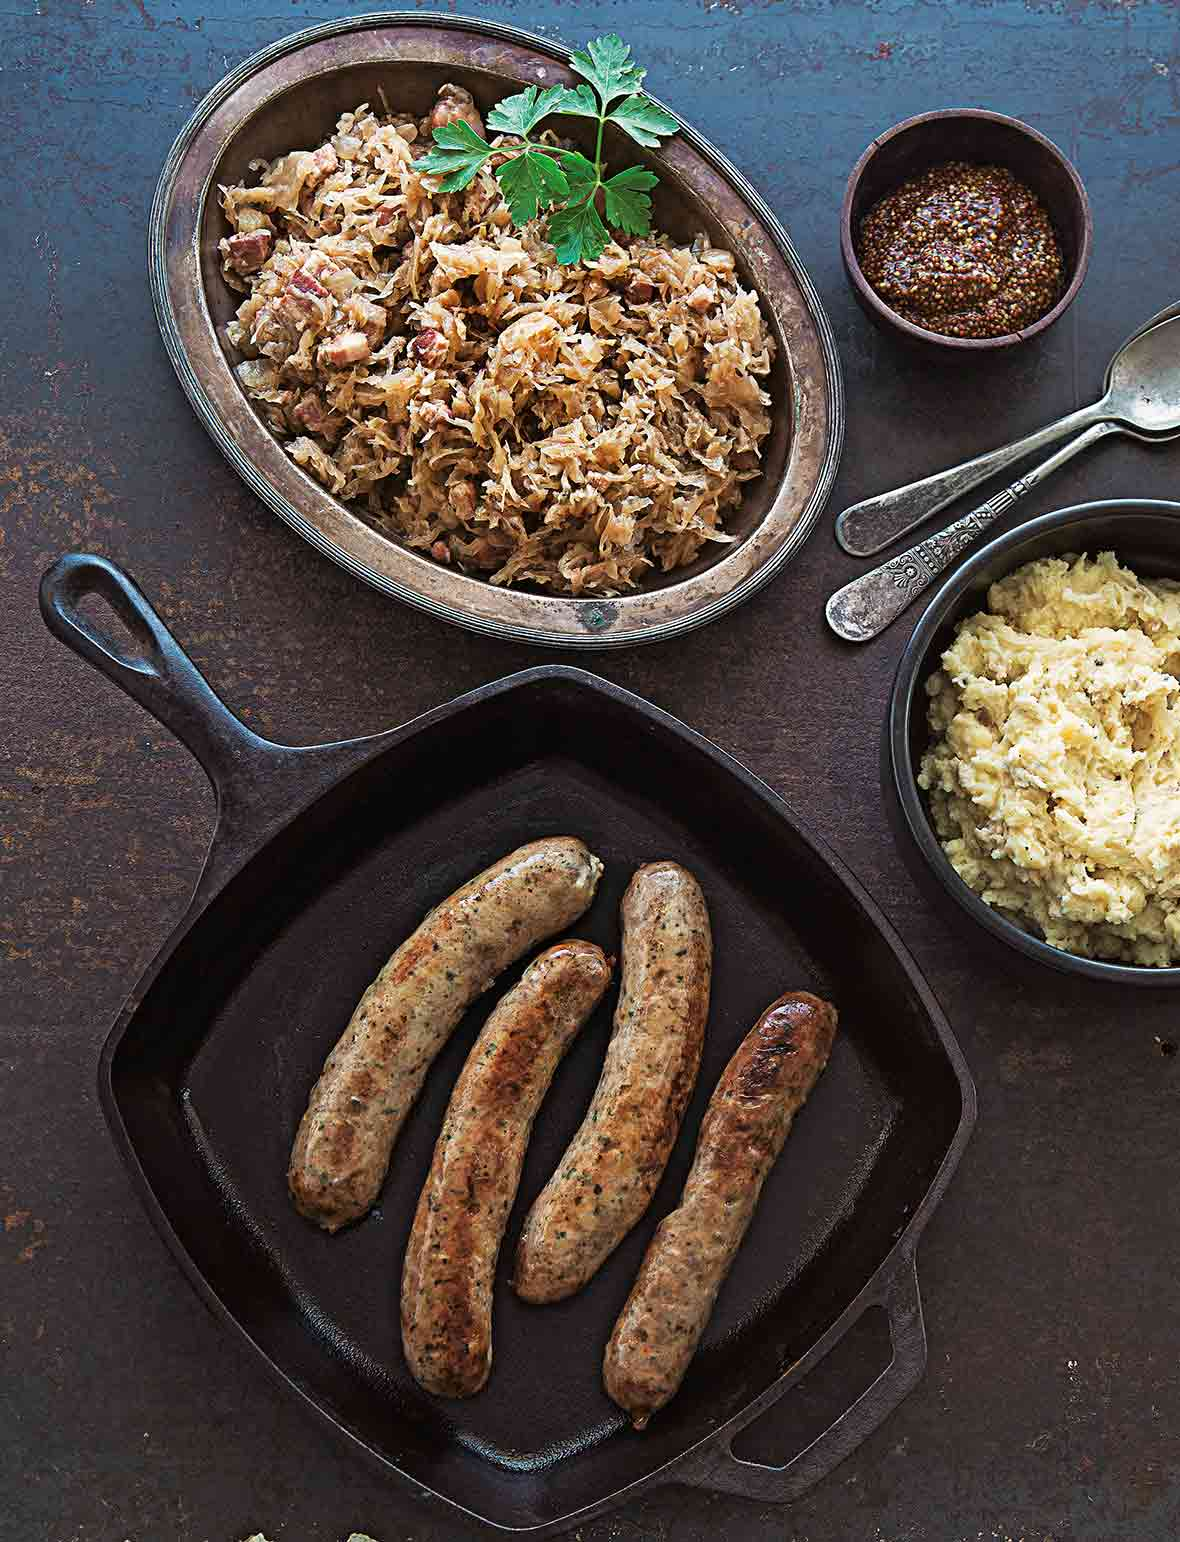 Four cooked bratwurst and sauerkraut, along with mashed potatoes, and grainy mustard in separate dishes beside the skillet containing the bratwurst.